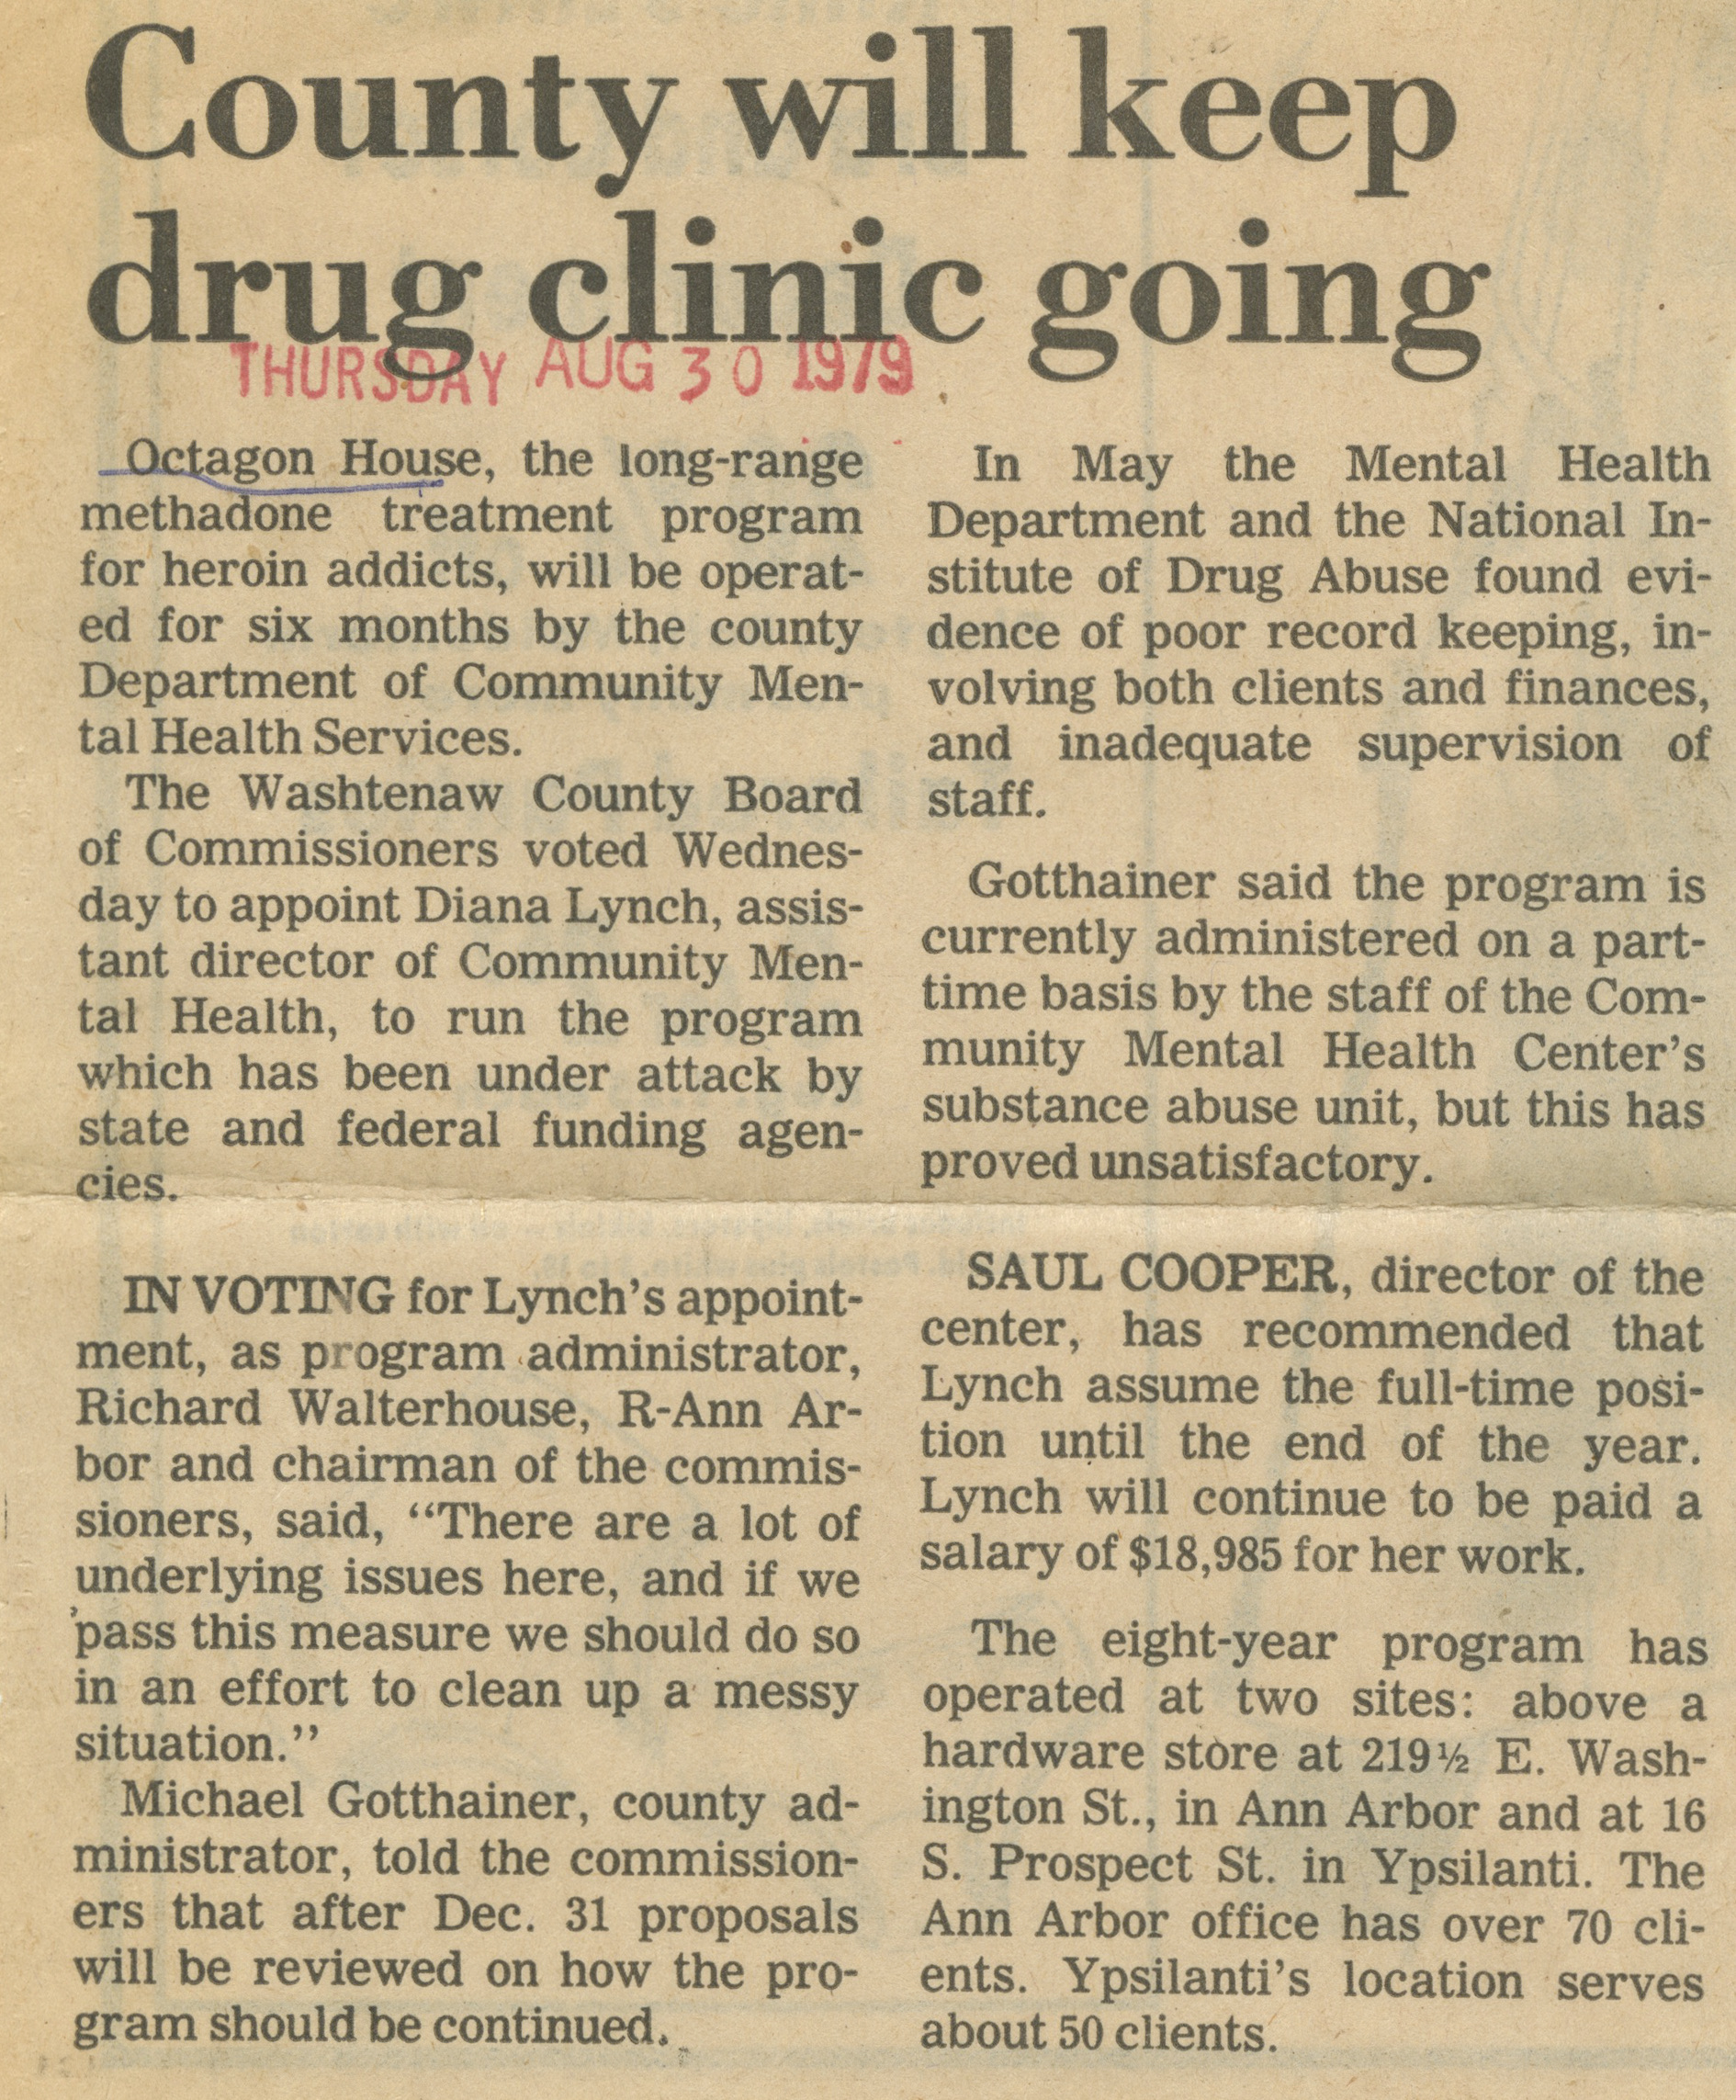 County will keep drug clinic going  image